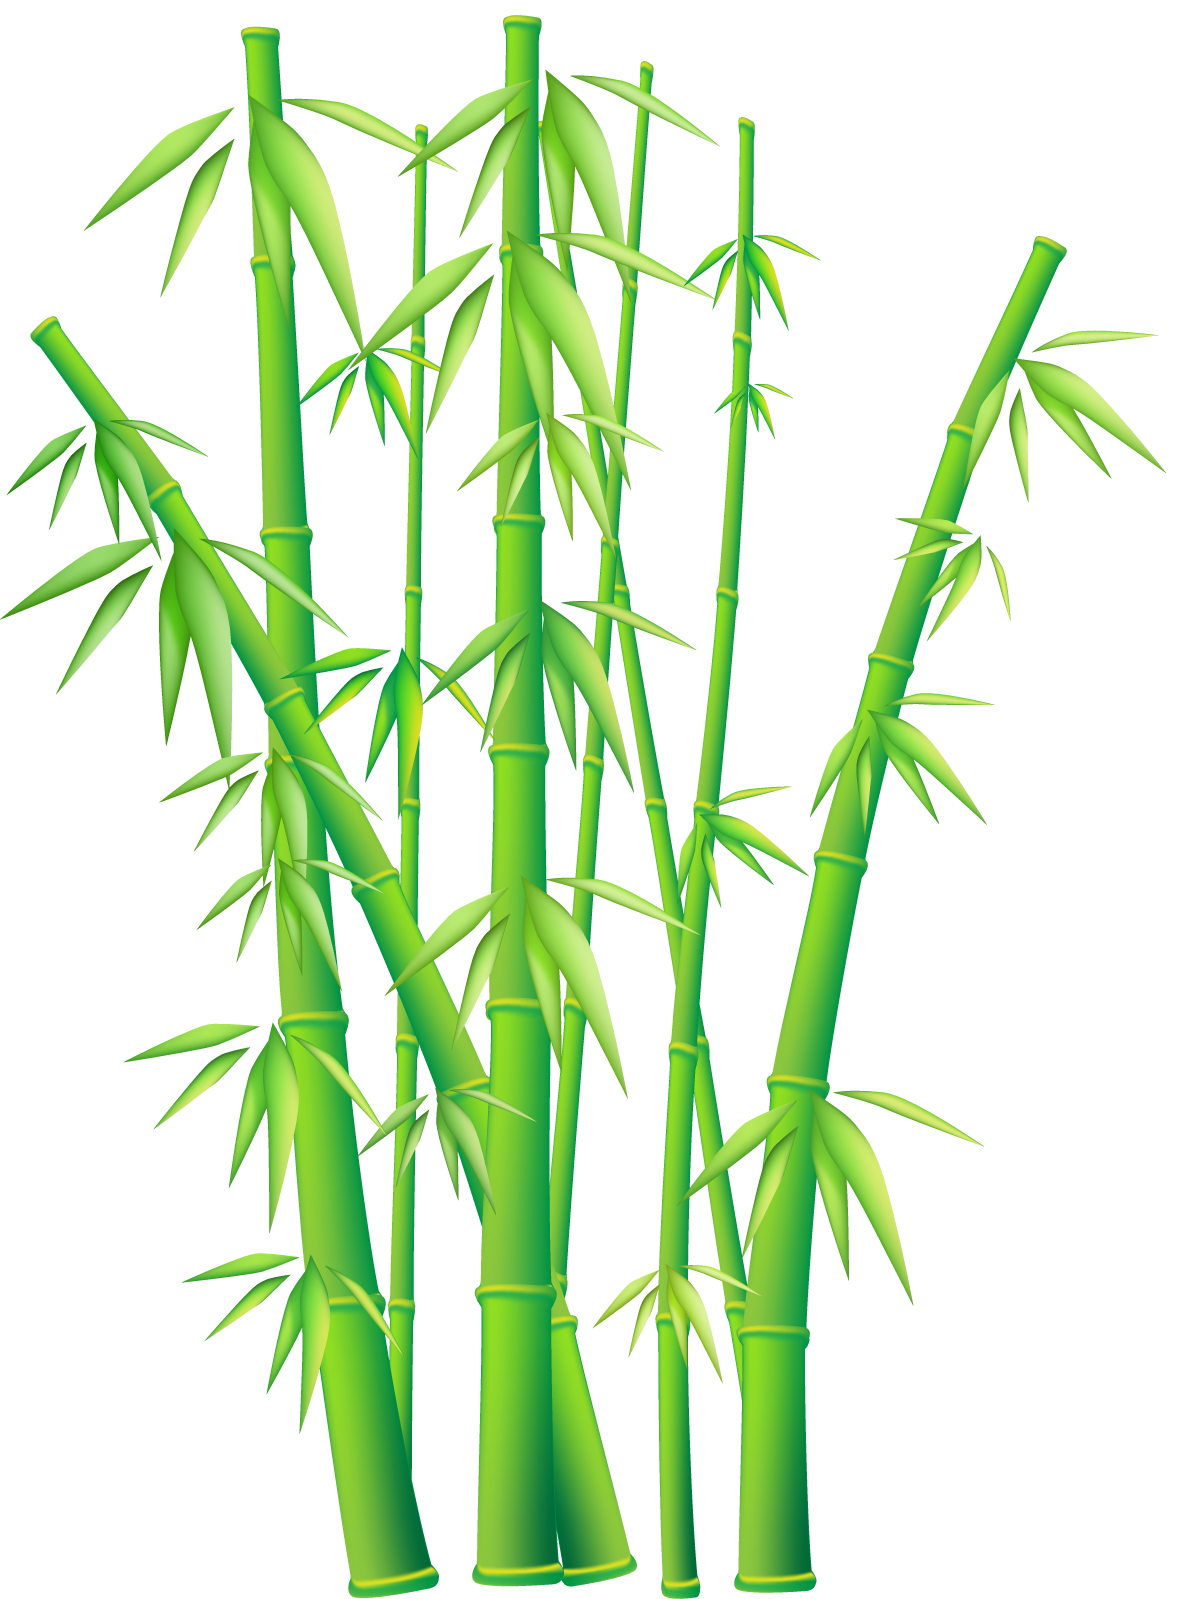 Bamboo clipart #9, Download drawings